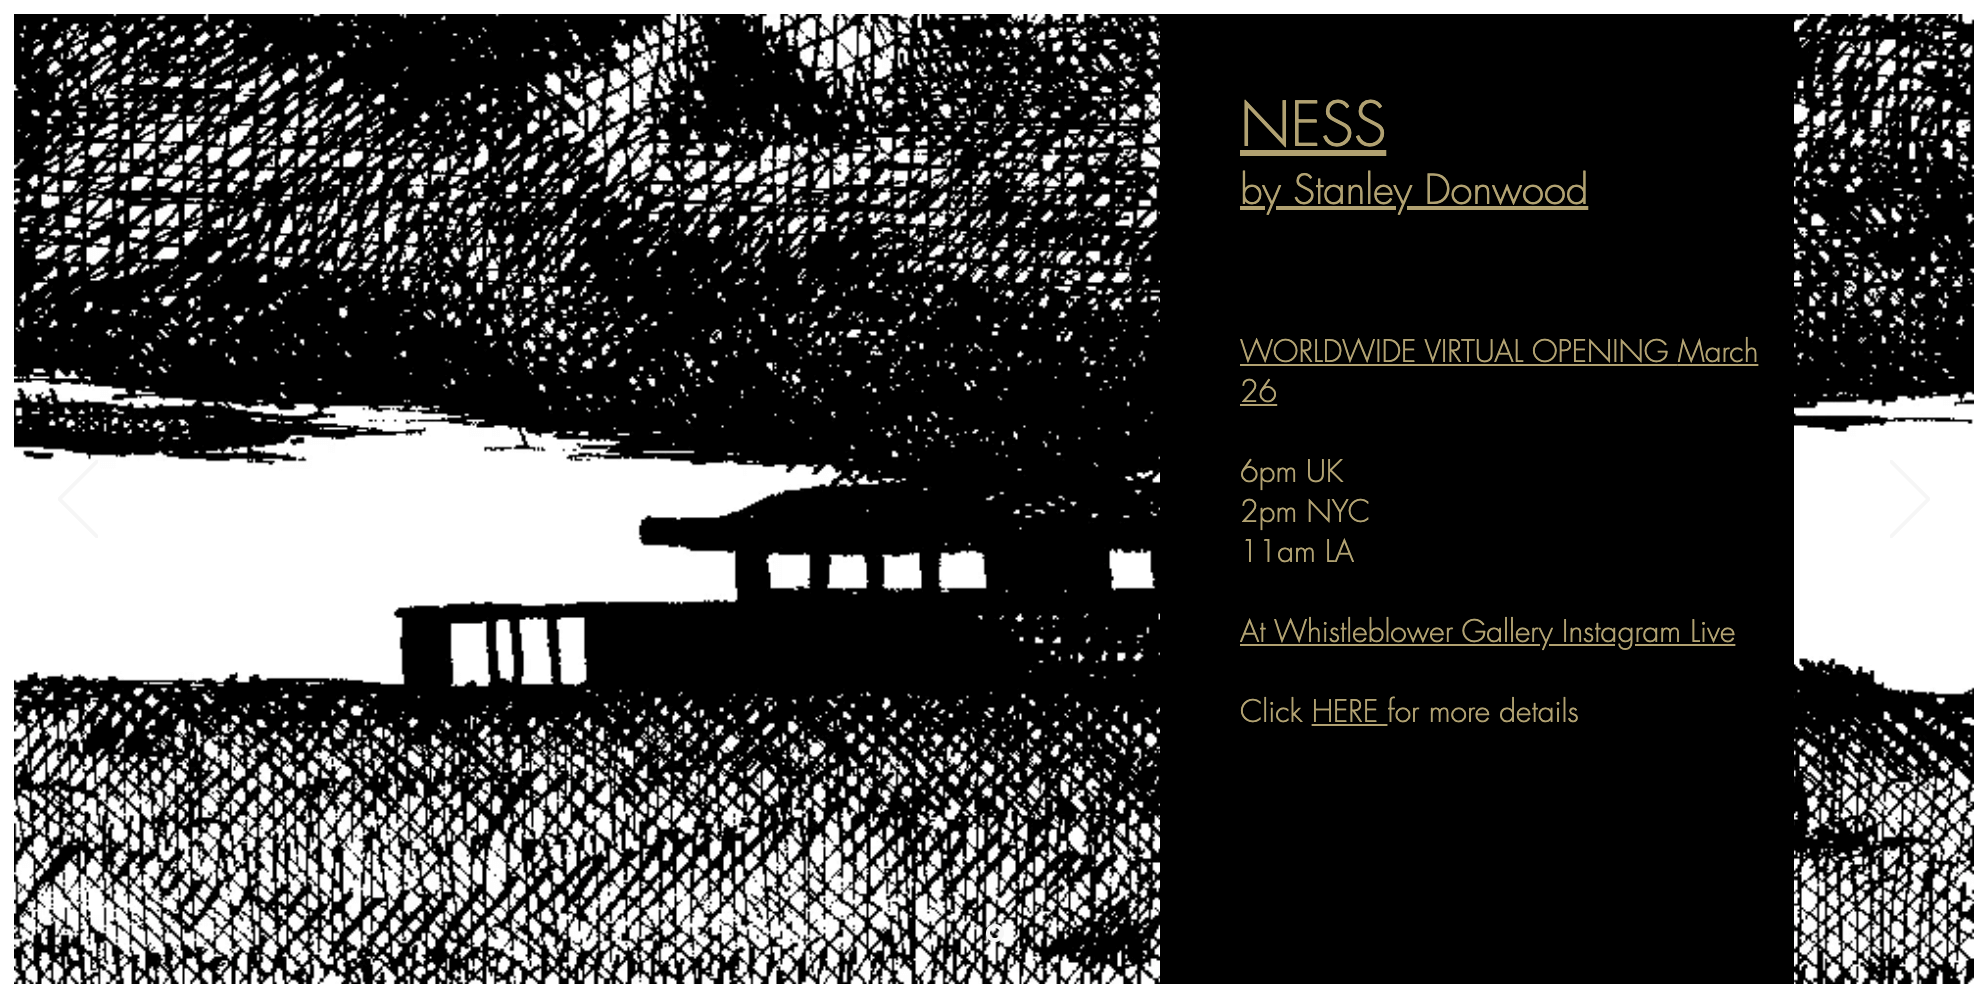 NESS gallery show